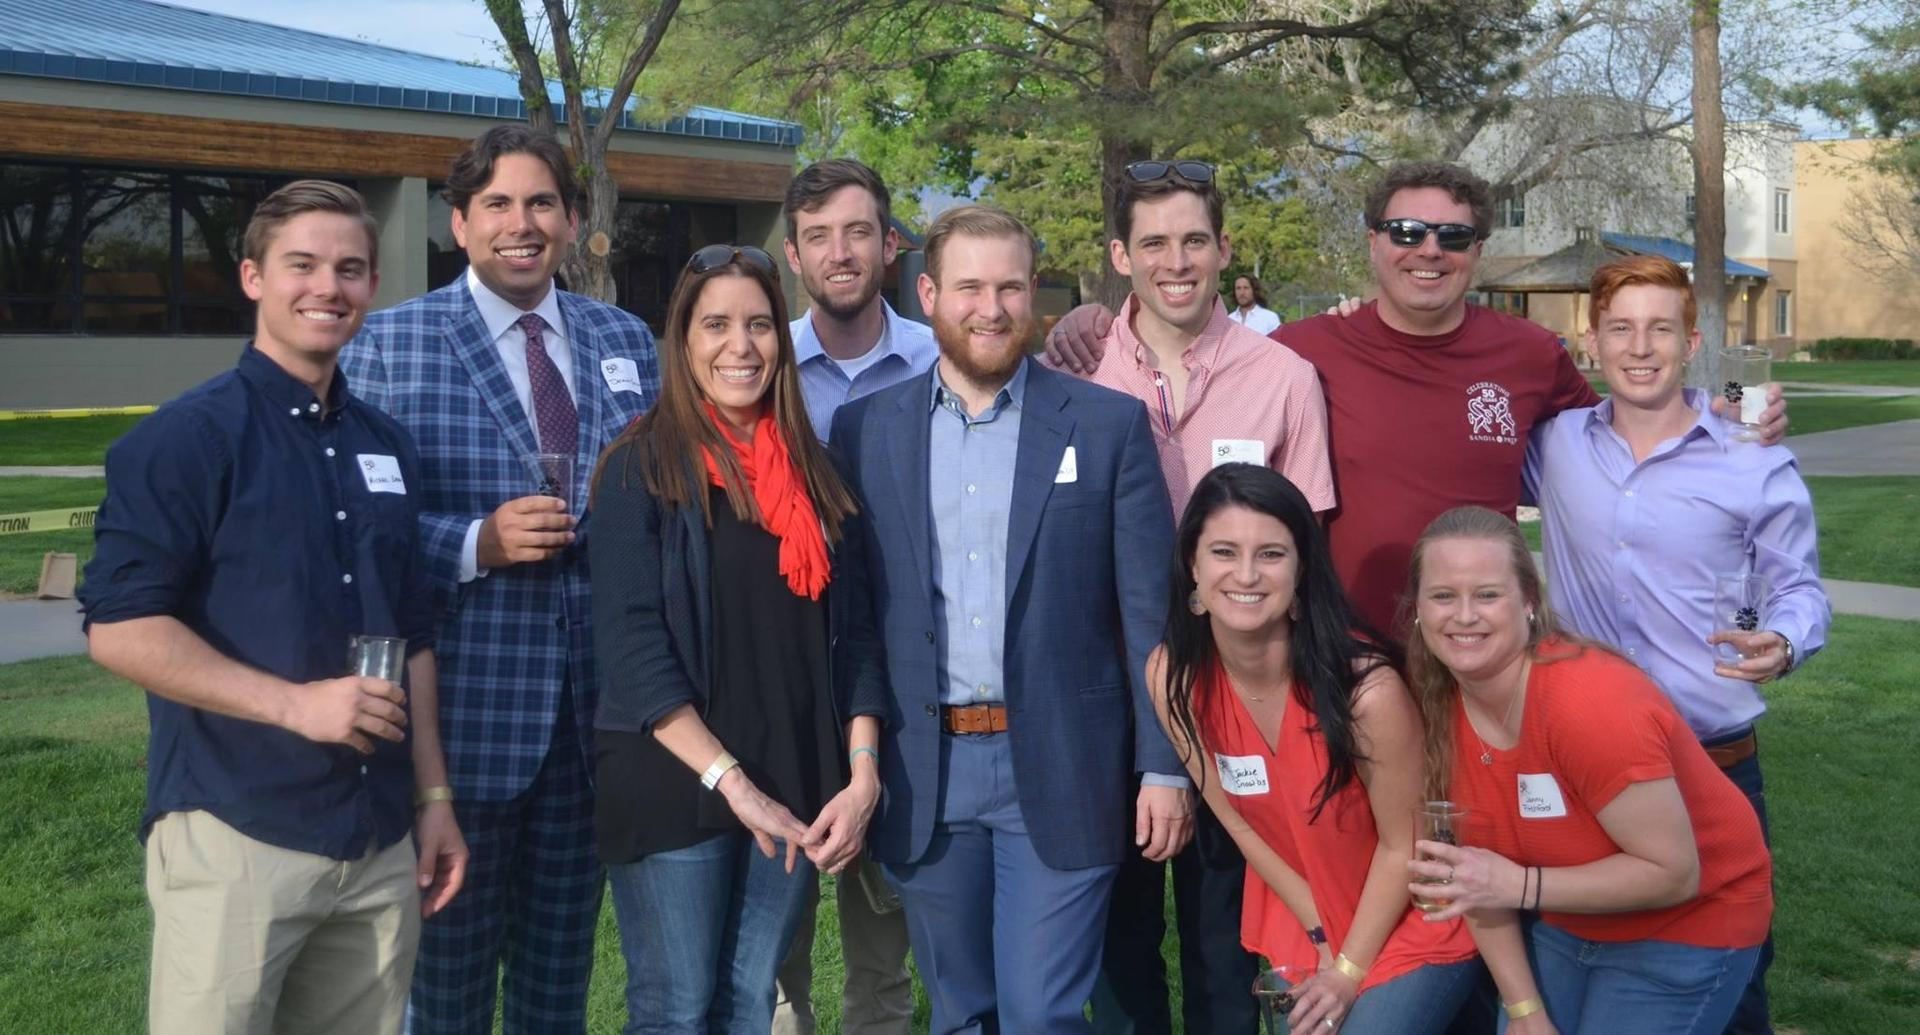 The Young Alumni Committee hosted a 'Classroom Crawl' during the School's DECADES celebration. Alumni from the past 50 years participated in the important fundraising event.